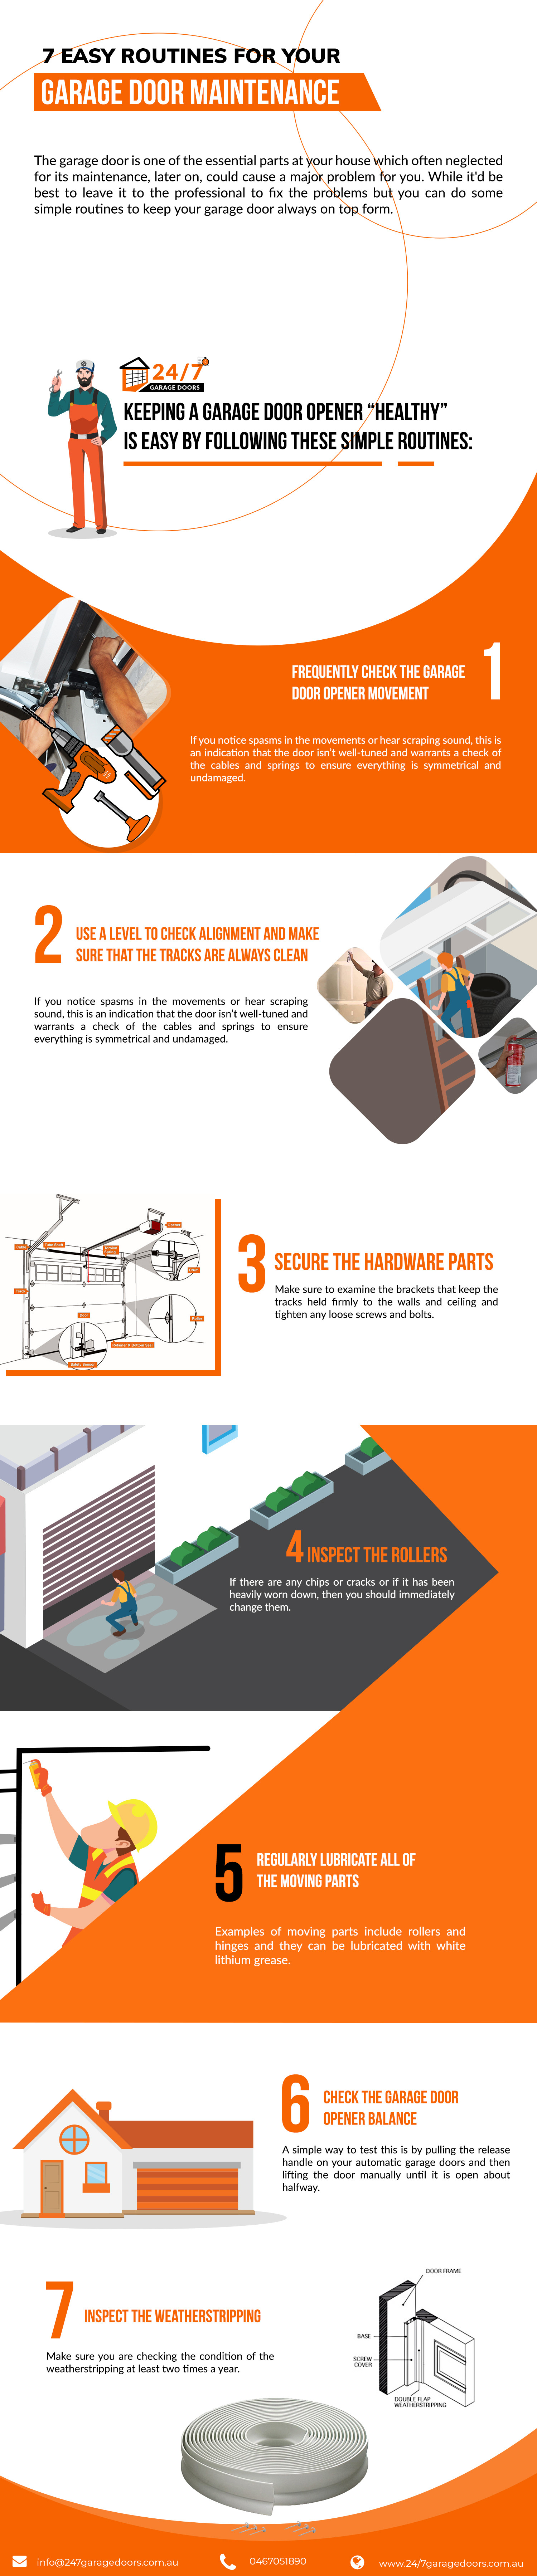 Simple Routines Keeping a Garage Door Opener Healthy Infographic